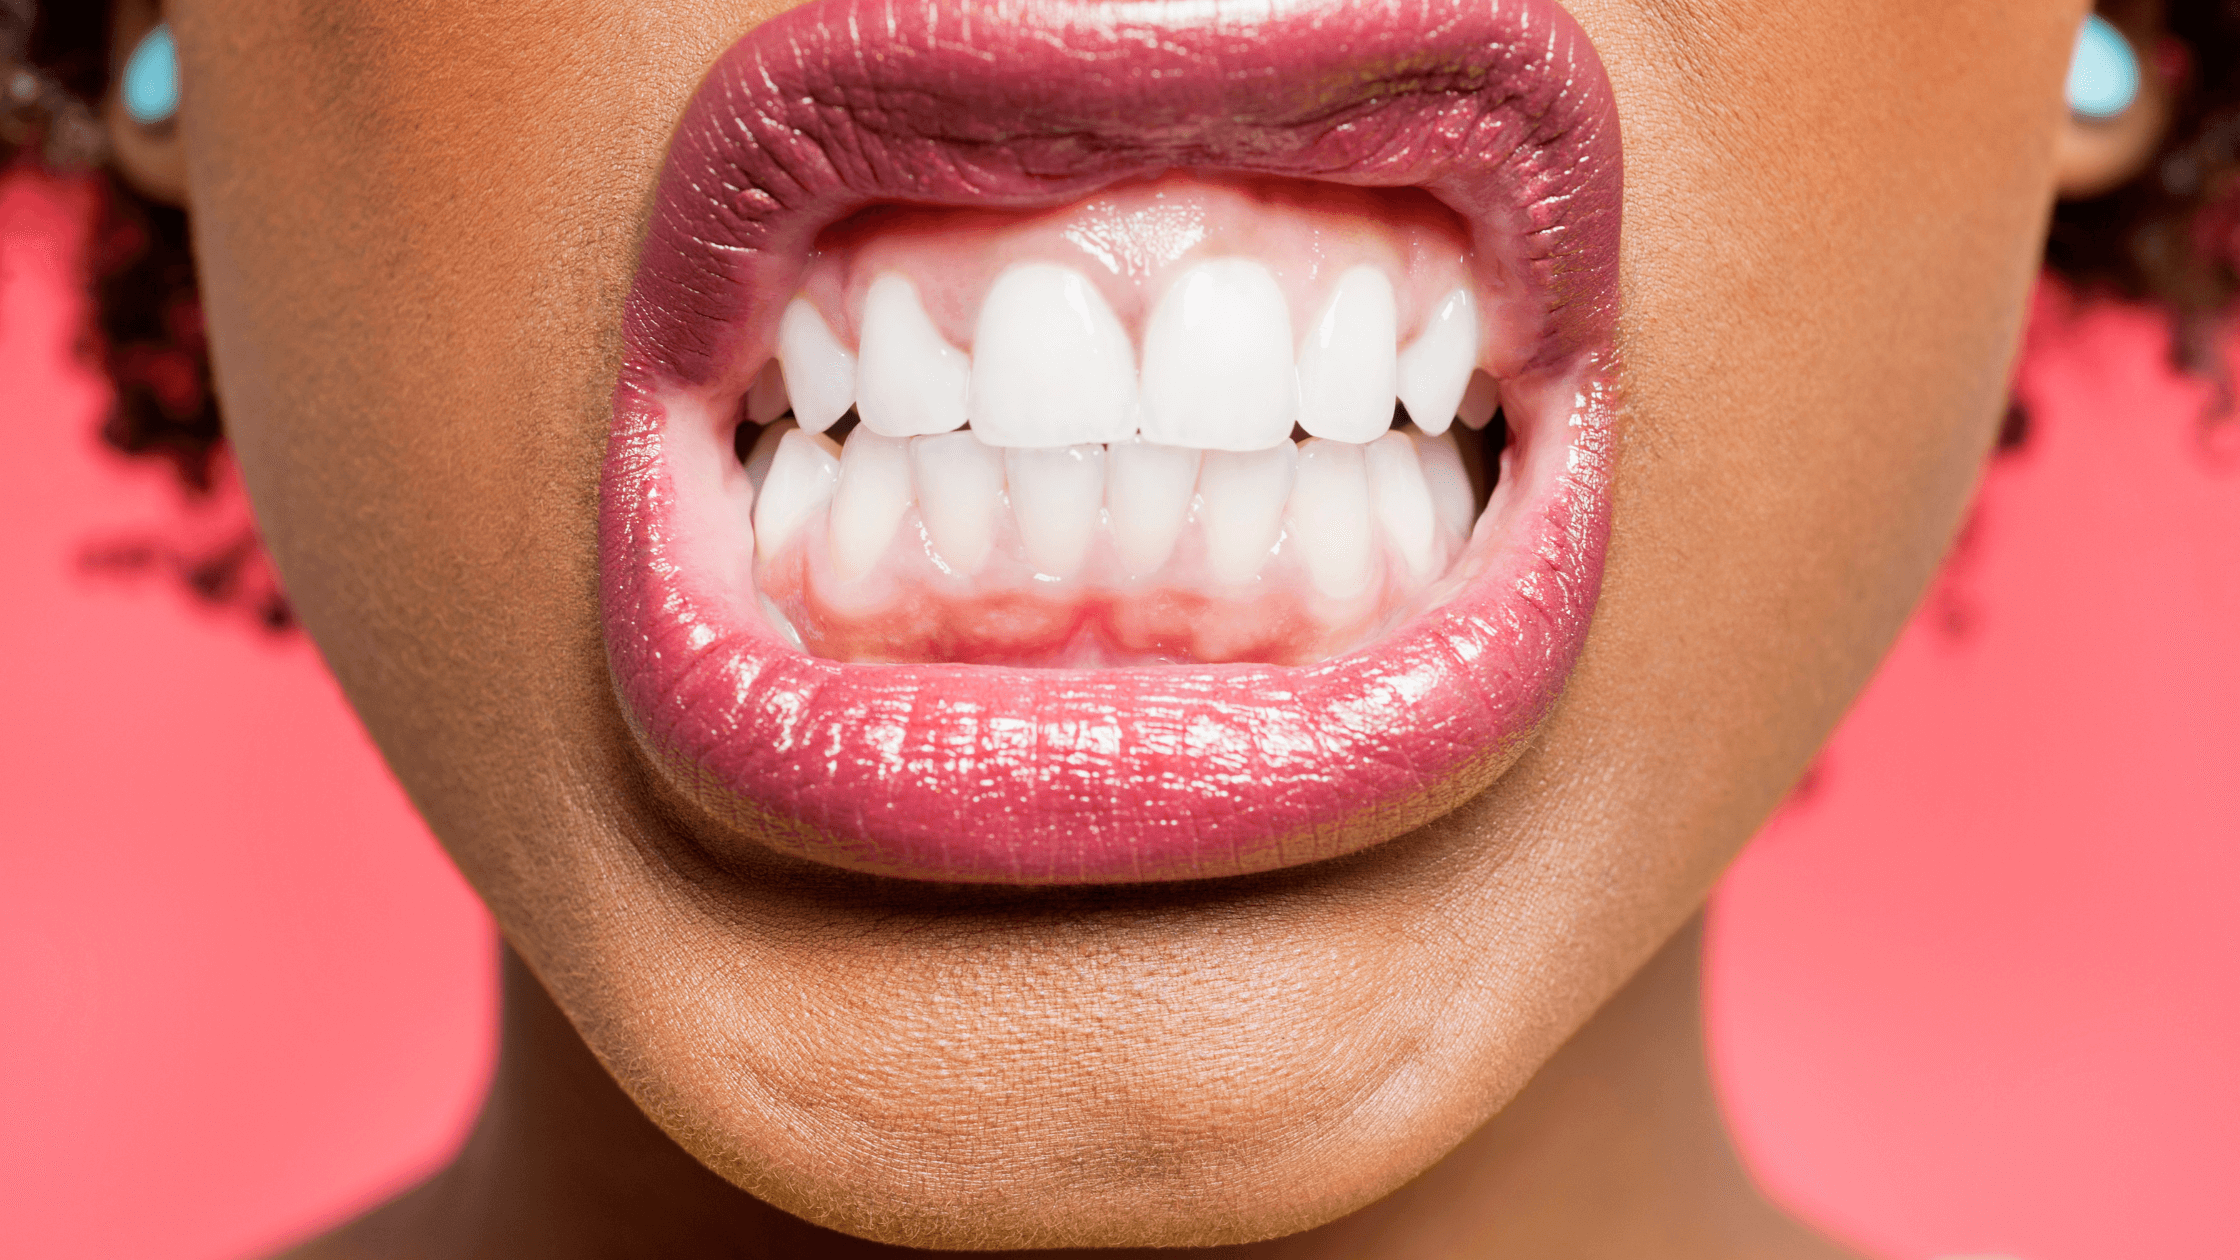 How anxiety can affect your teeth